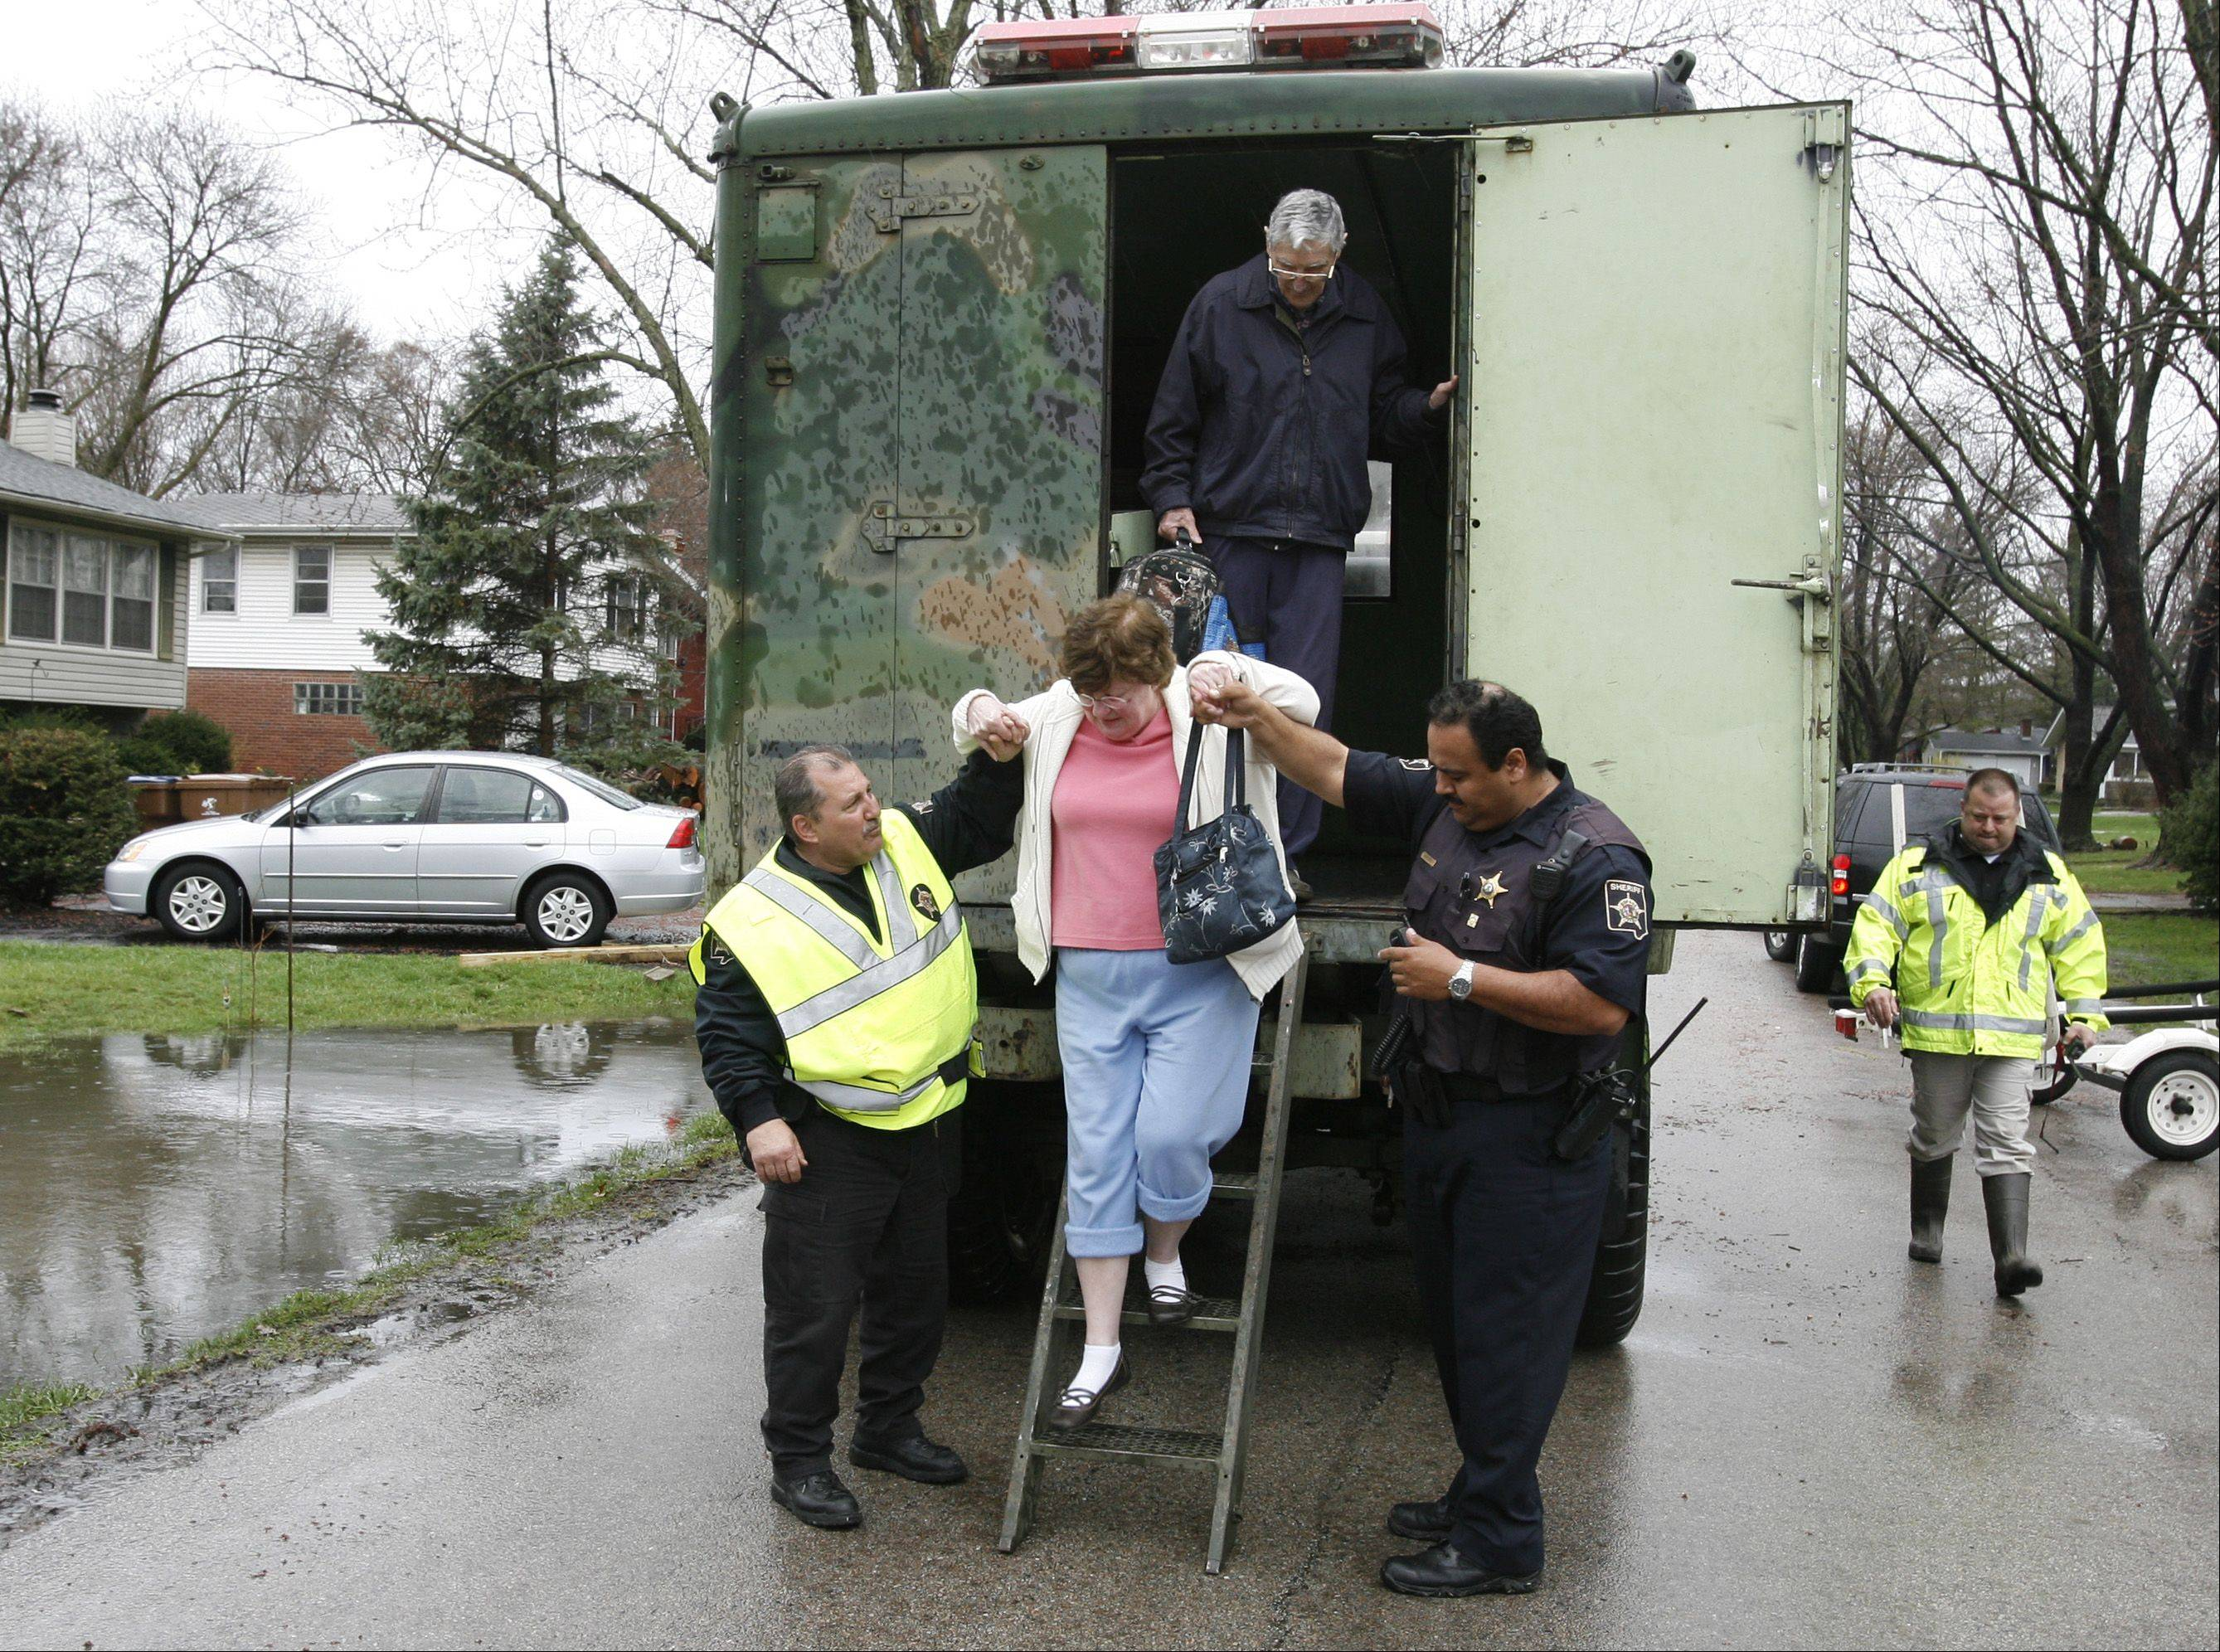 Glen Ellyn-area resident: Worst in 30 years; flood victims rescued